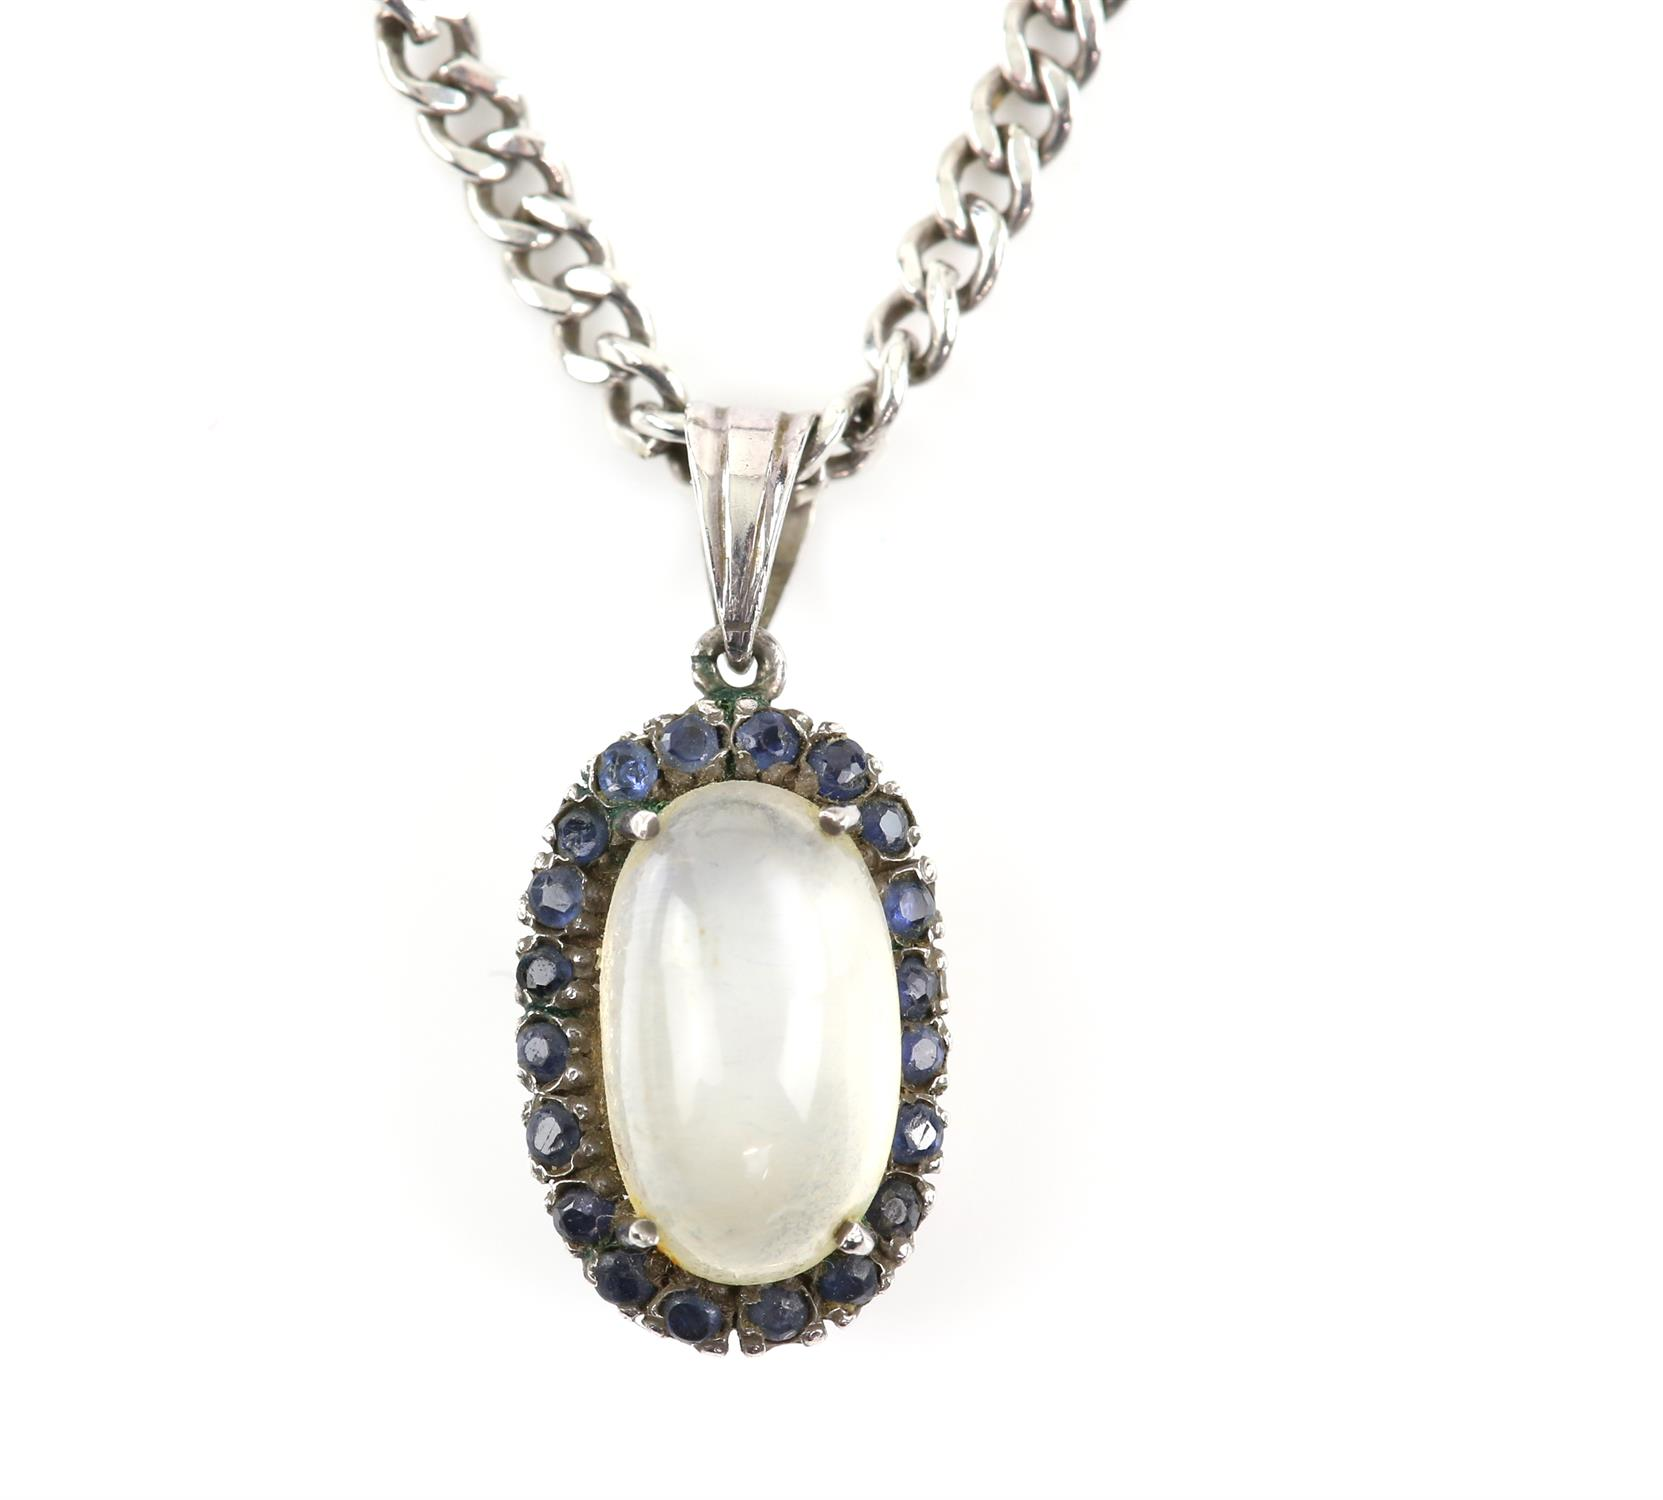 Moonstone and sapphire cluster pendant, central oval cabochon cut moonstone, 12 x 7.